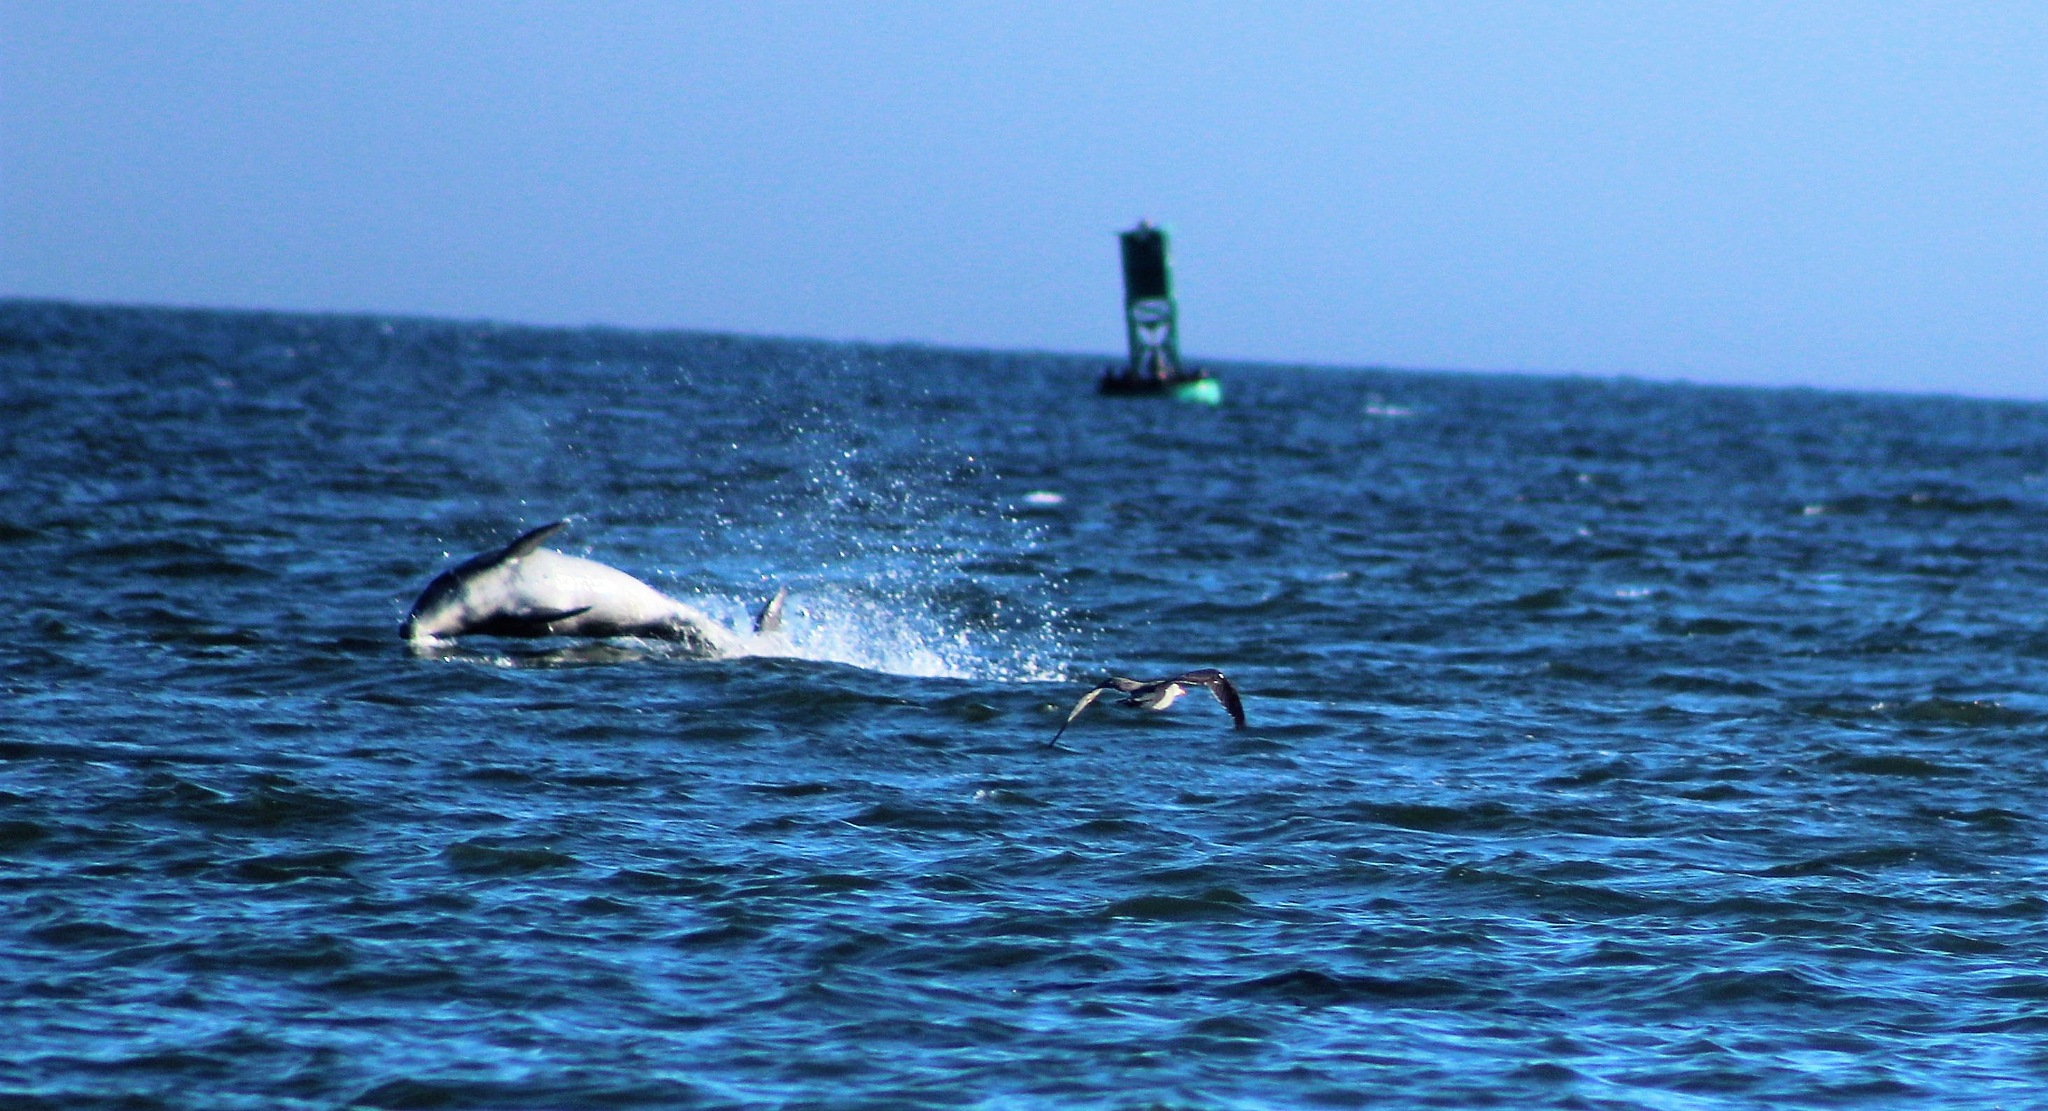 #Dolphin at play by T.Neil Walker